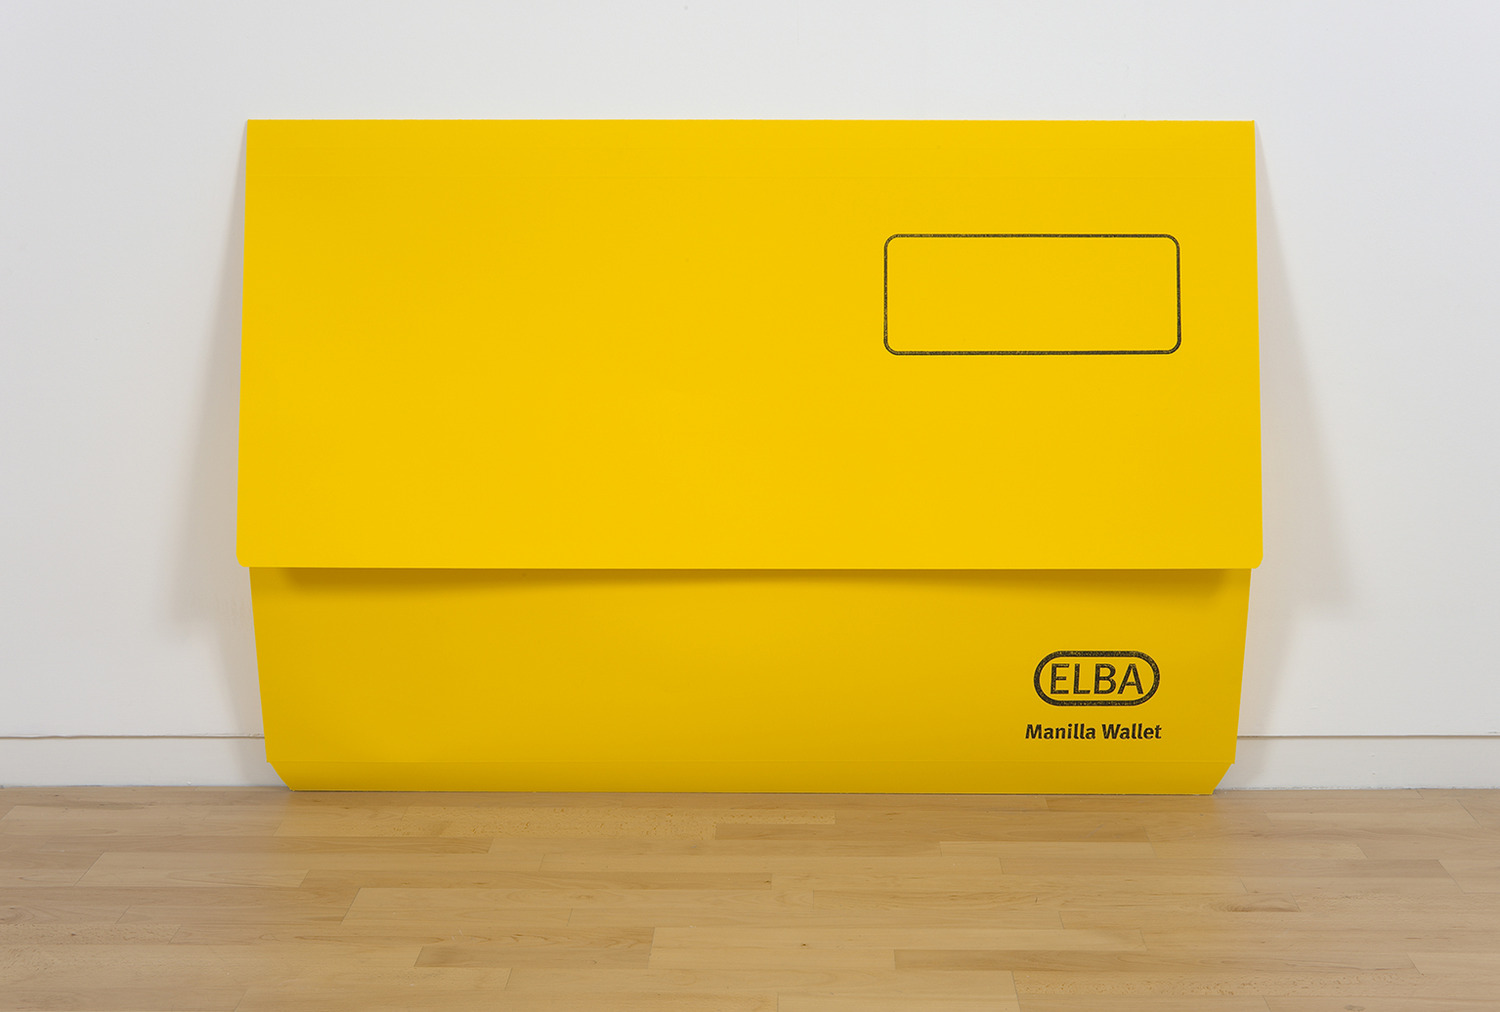 Scott Myles, The Past From Above (Elba Yellow), 2010, Screenprint on Paper, 144 x 99 x 4 cm